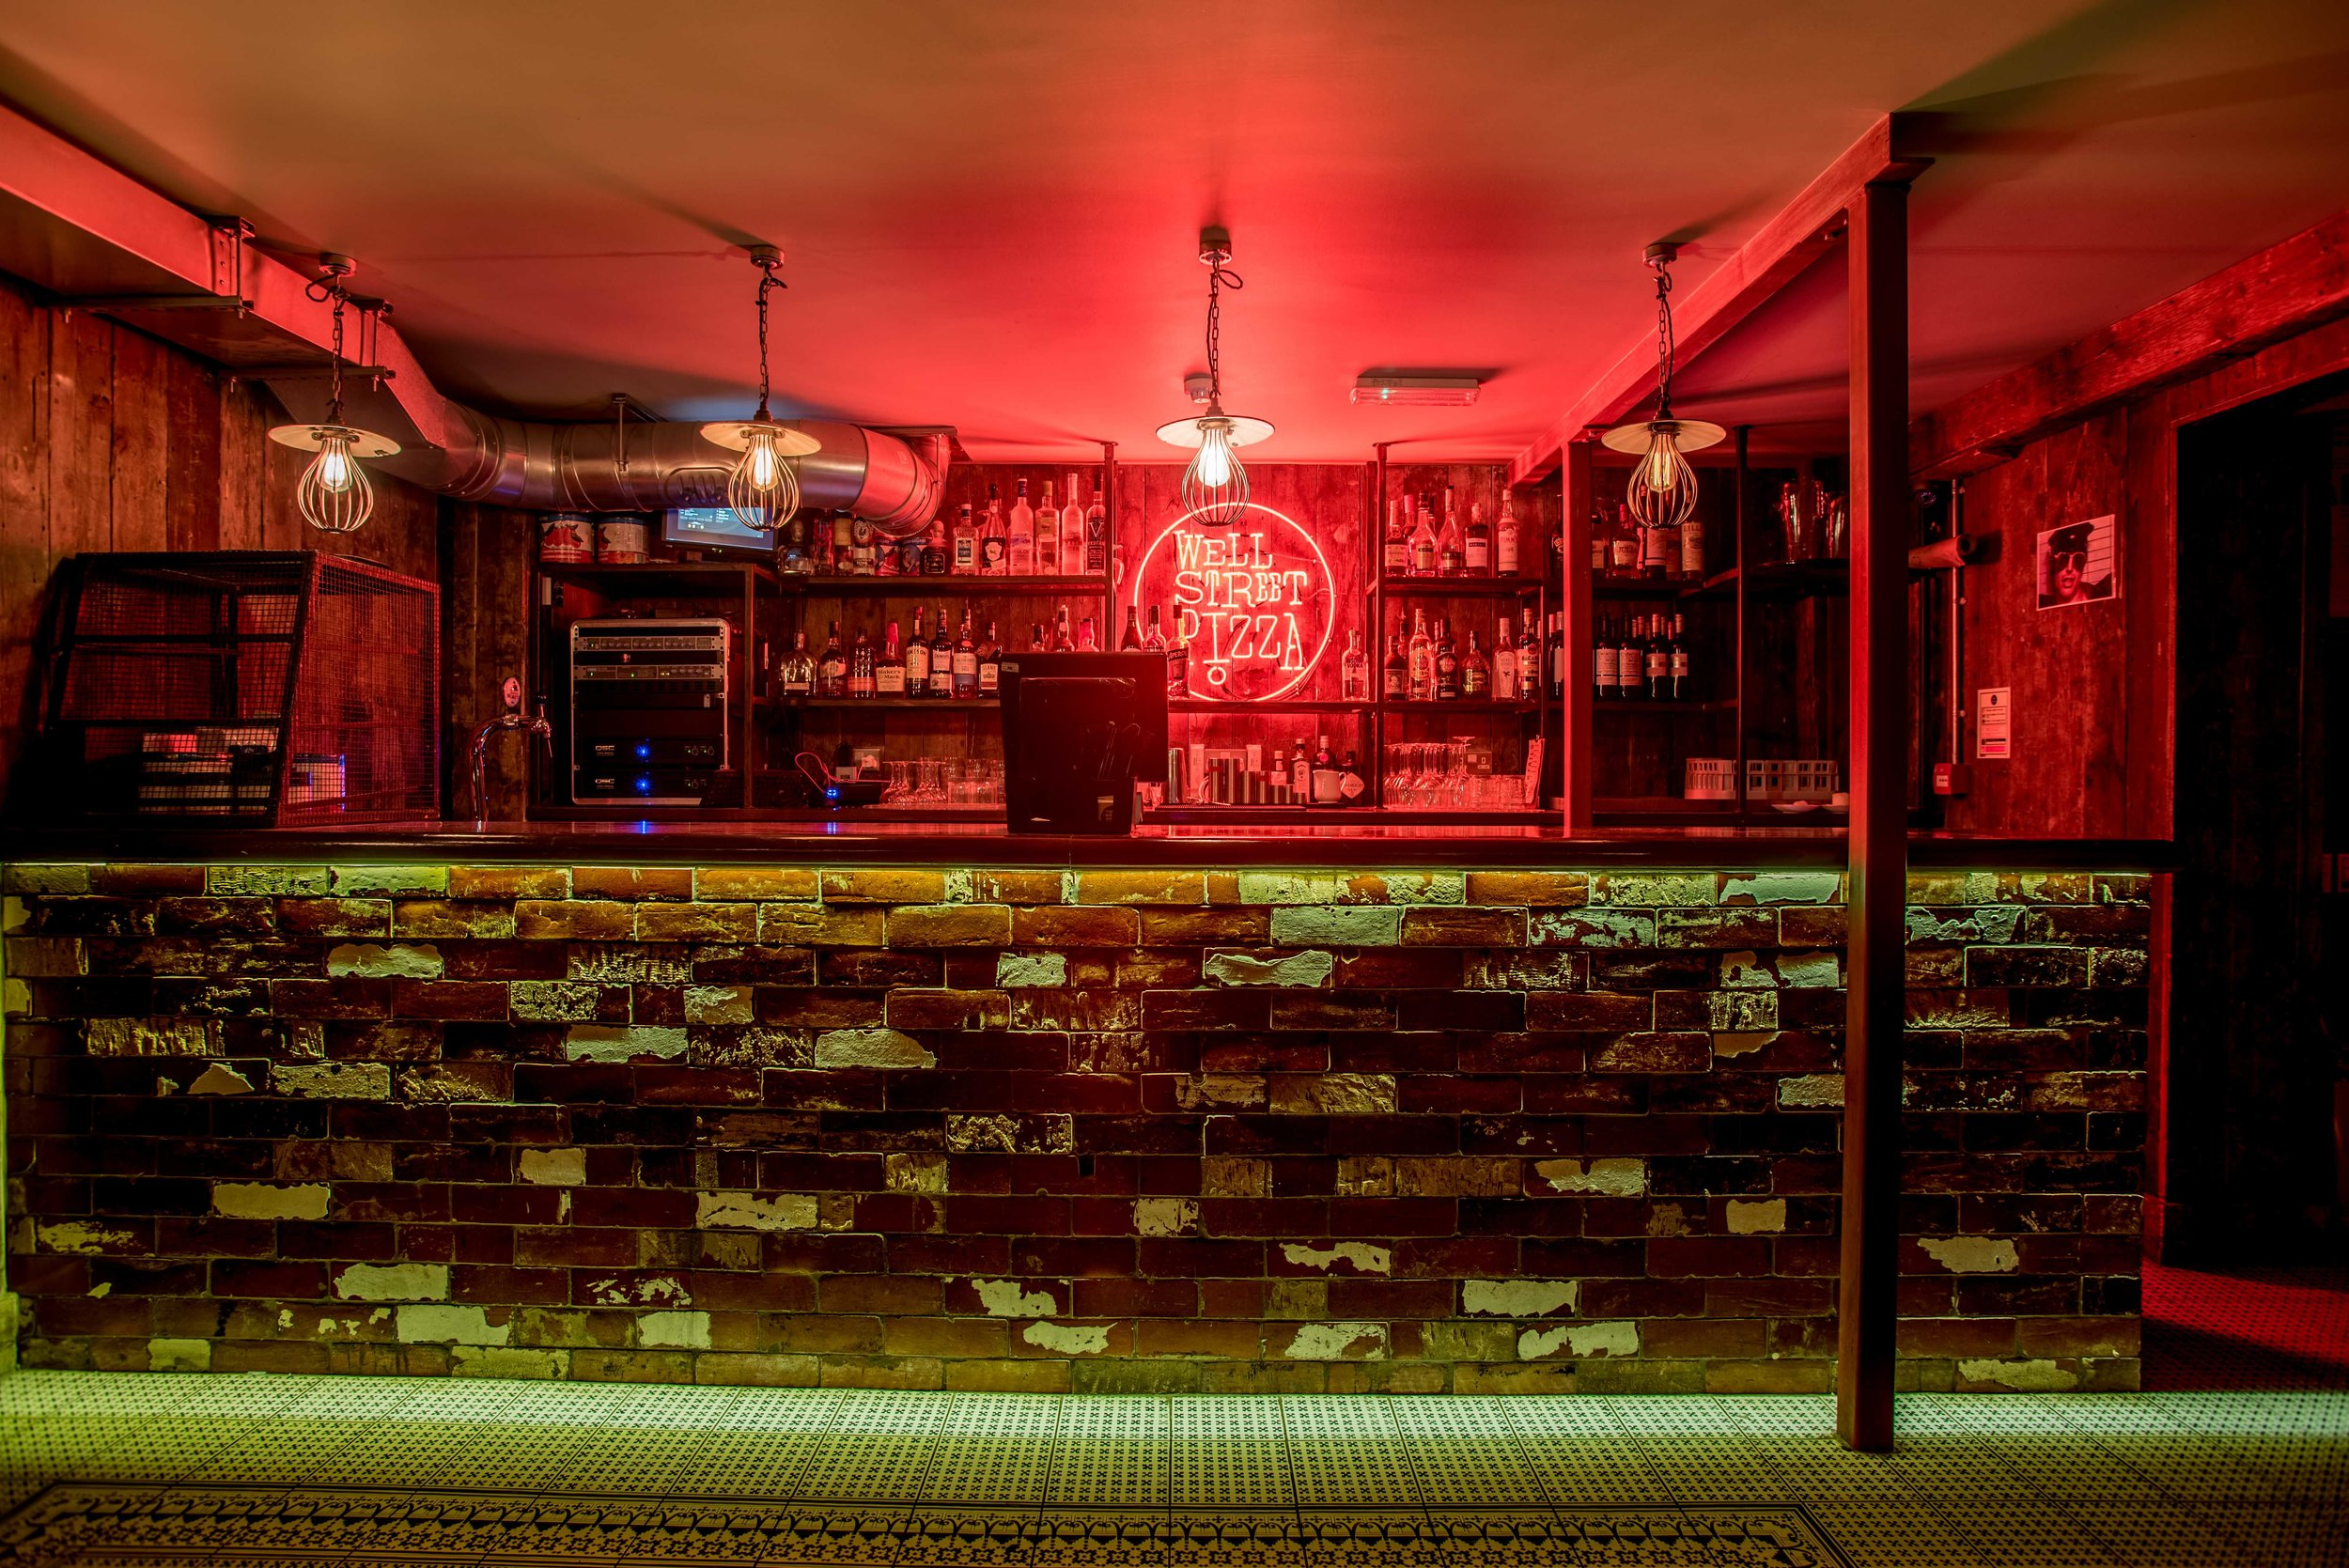 PRIVATE HIRE - Fancy partying with us? CLICK TO Find out more about hiring our basement bar